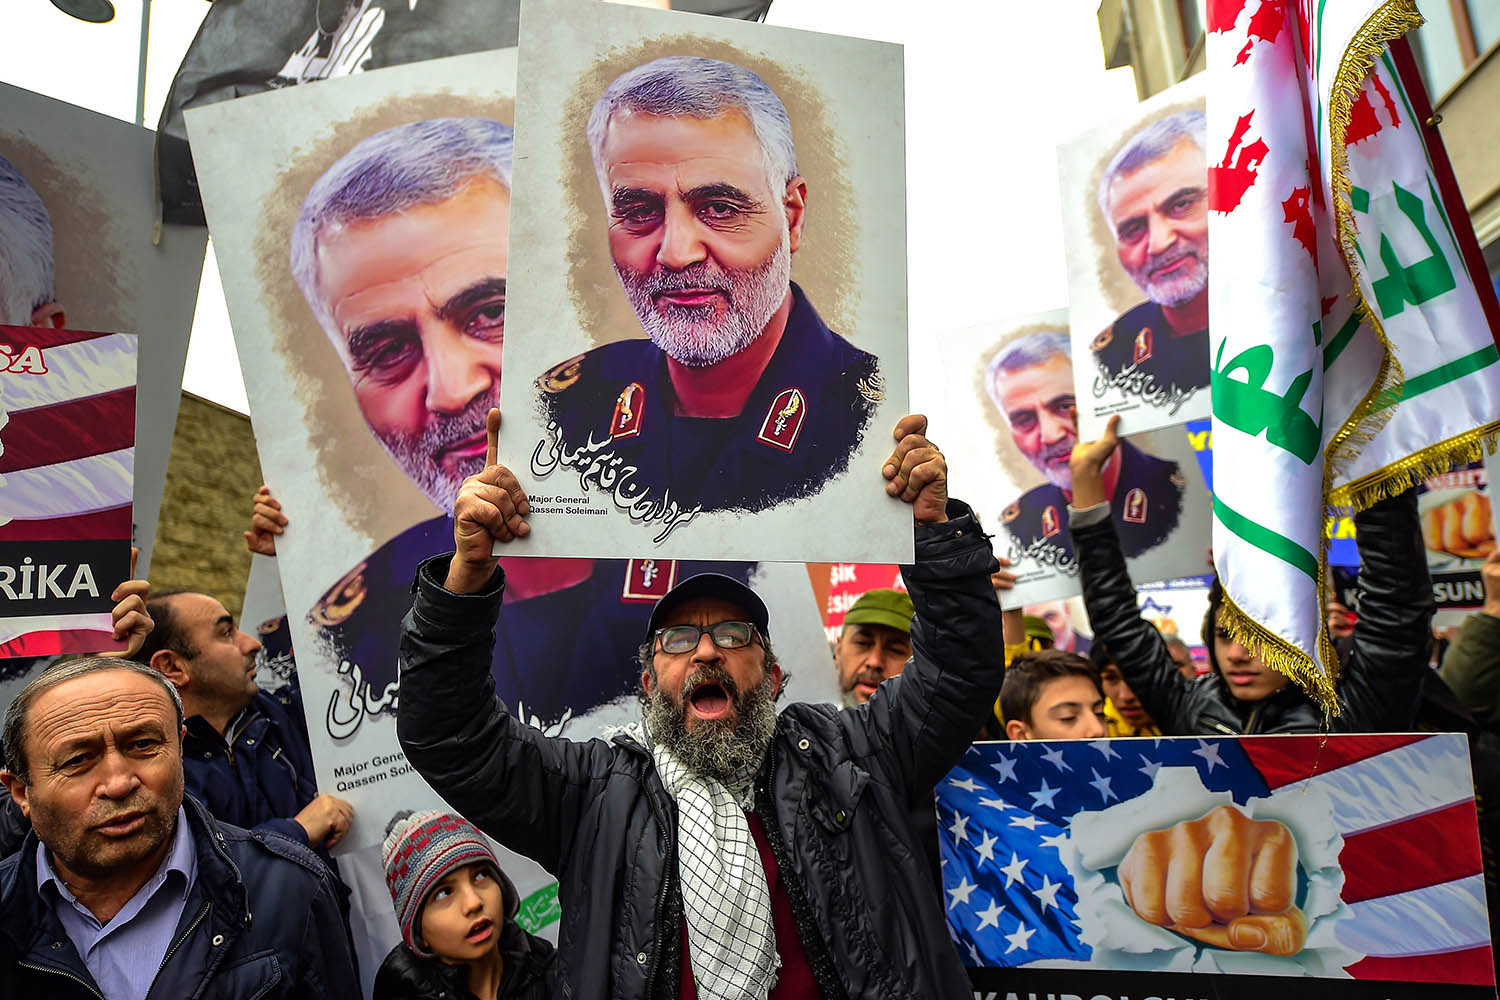 Protesters hold pictures of Suleimani during a demonstration outside the U.S. consulate in Istanbul, Turkey, on Jan. 5. YASIN AKGUL/AFP via Getty Images